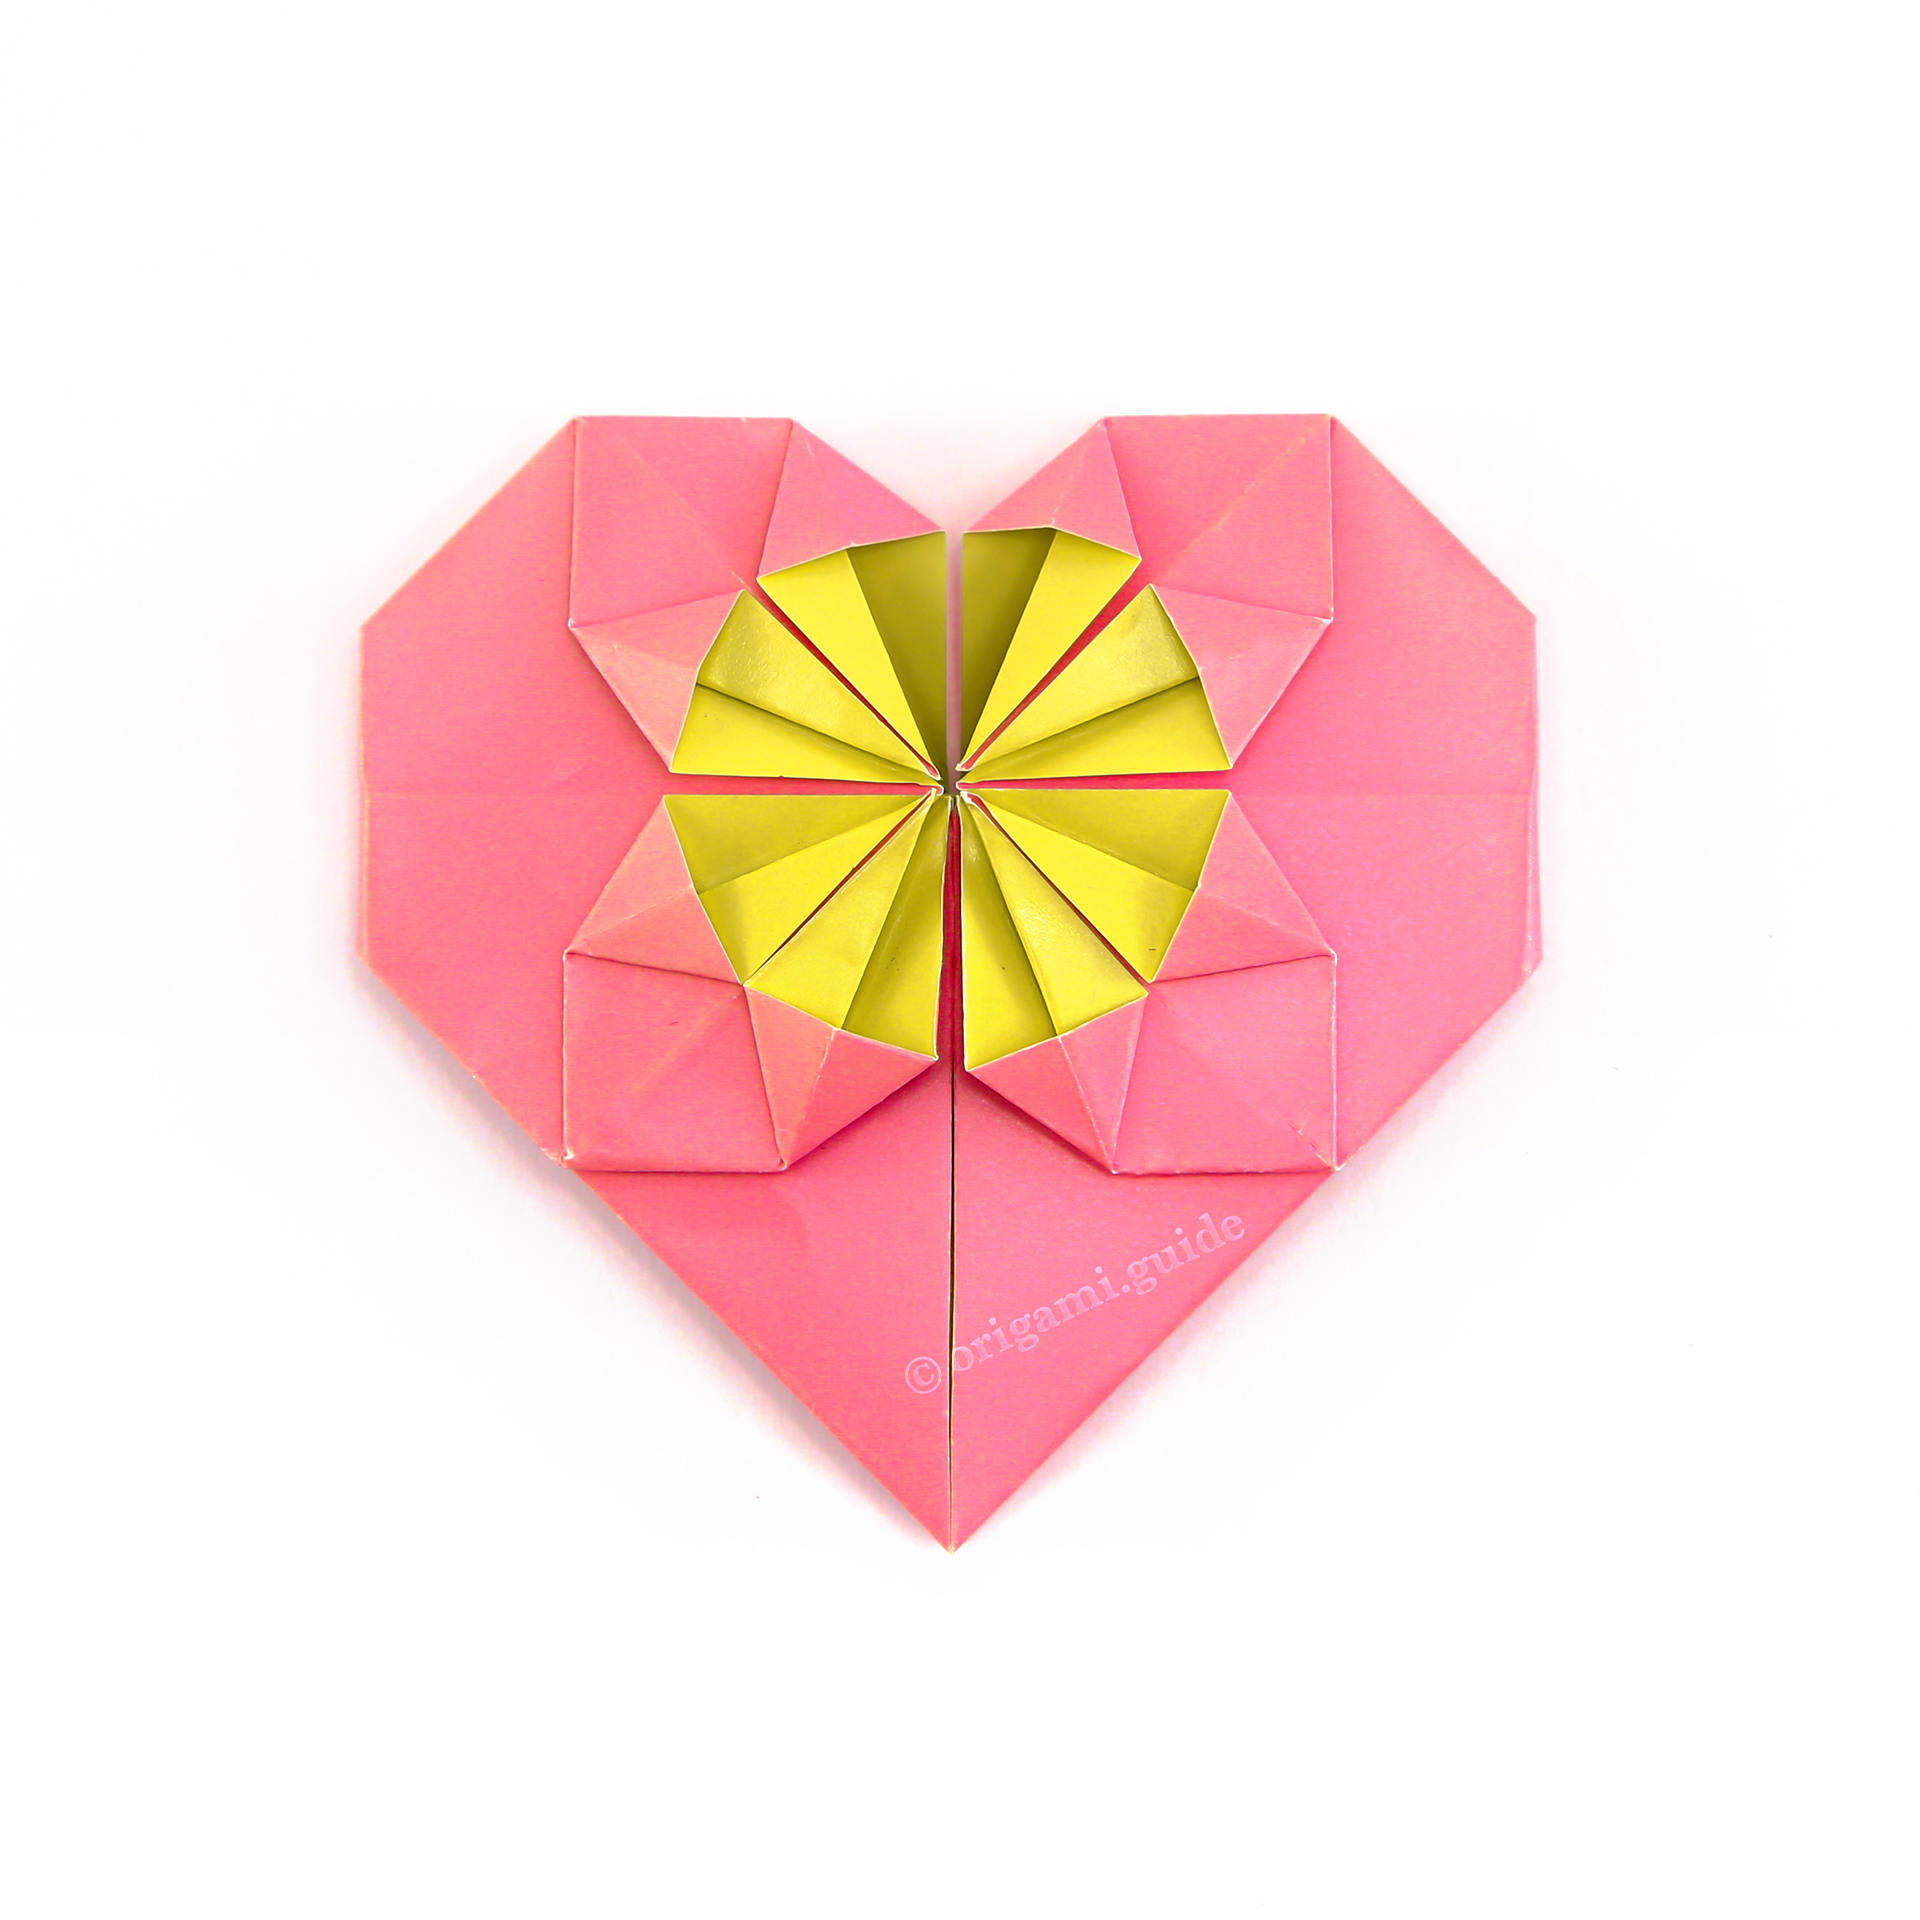 Dollar Origami - Heart Within a Heart | Dollar origami, Dollar ... | 1920x1920